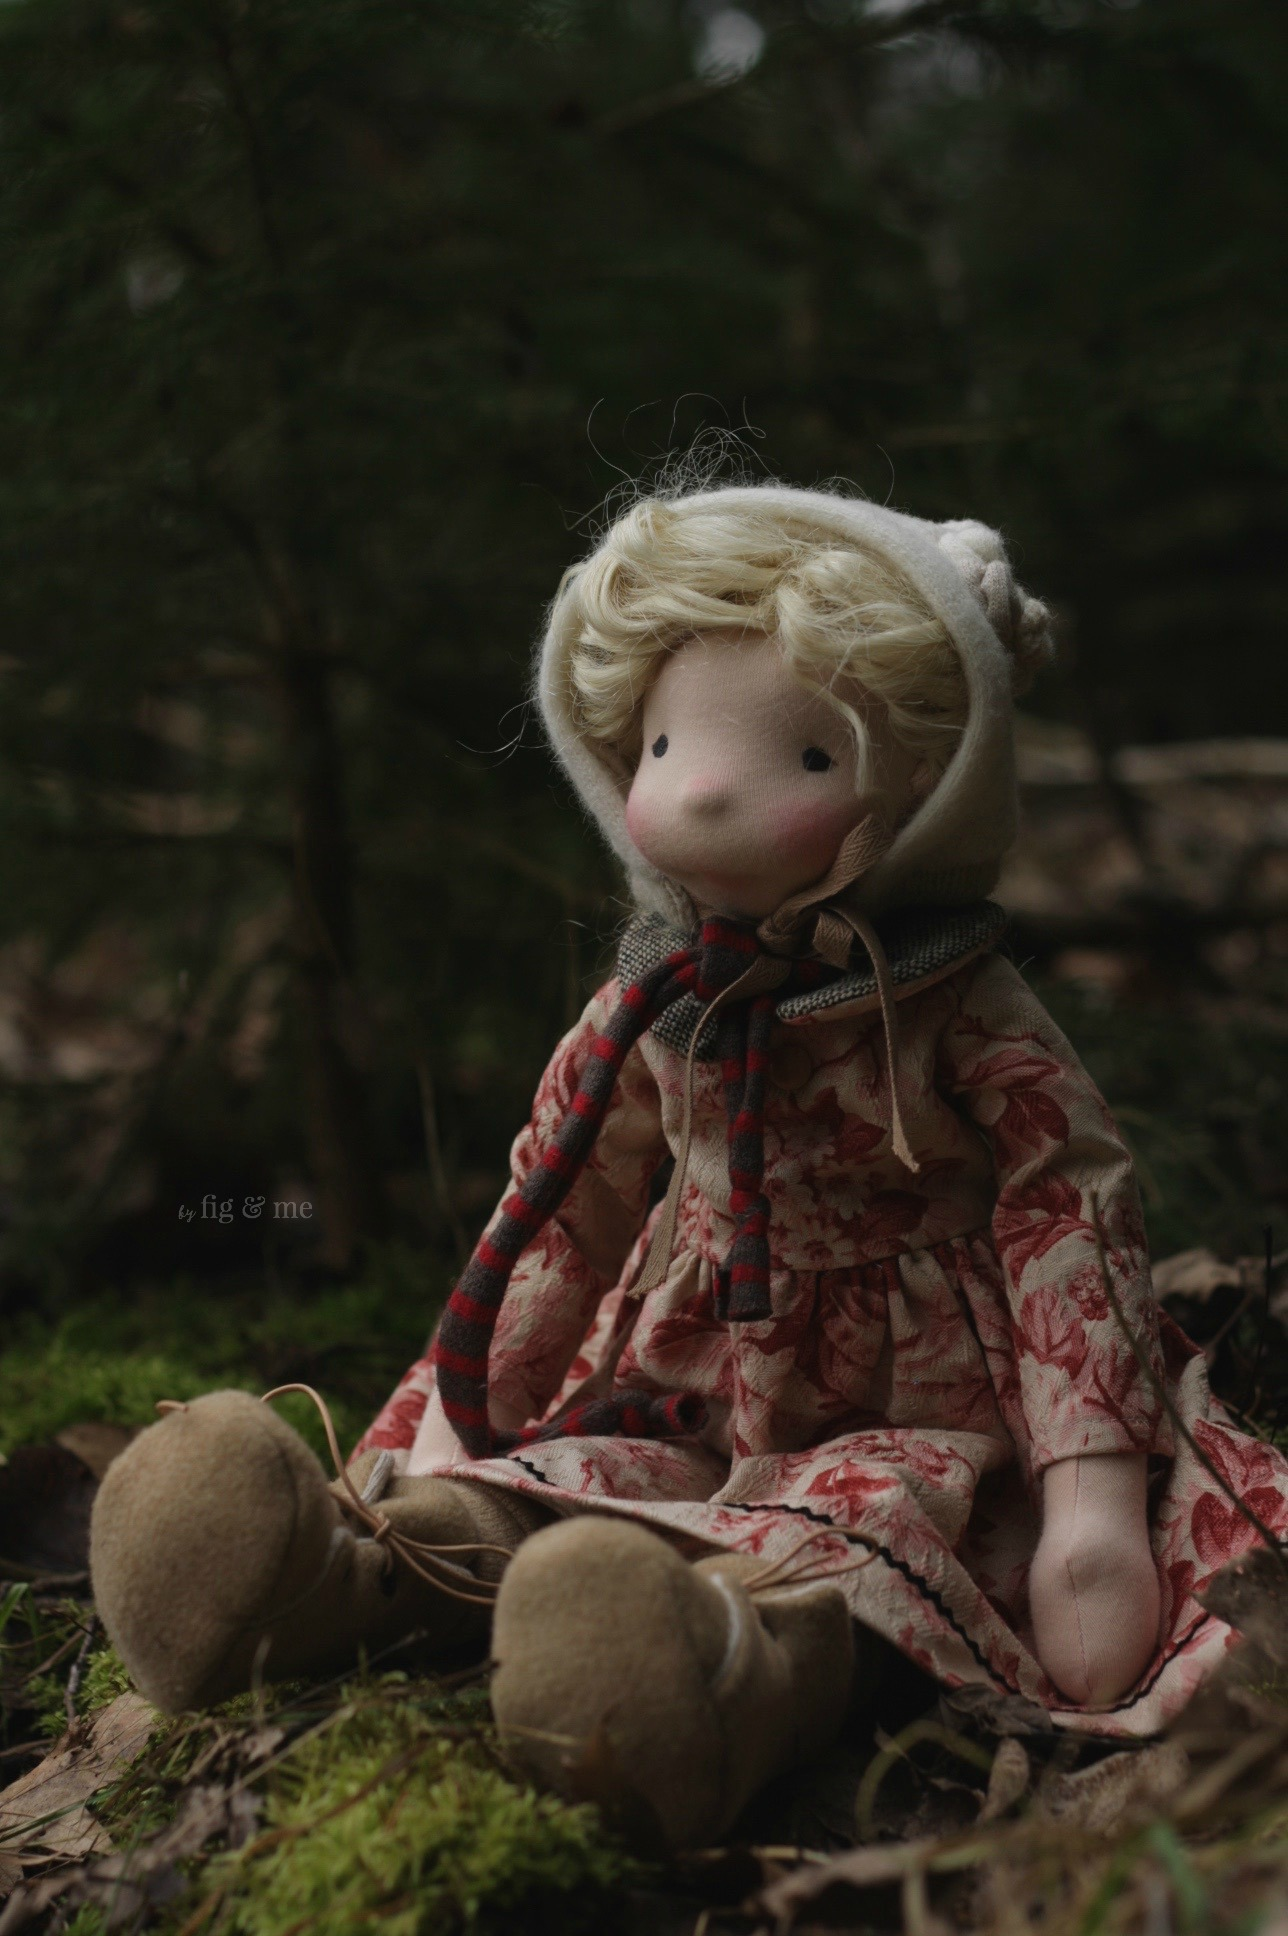 Sigrún, a natural fiber art doll by Fig and Me.